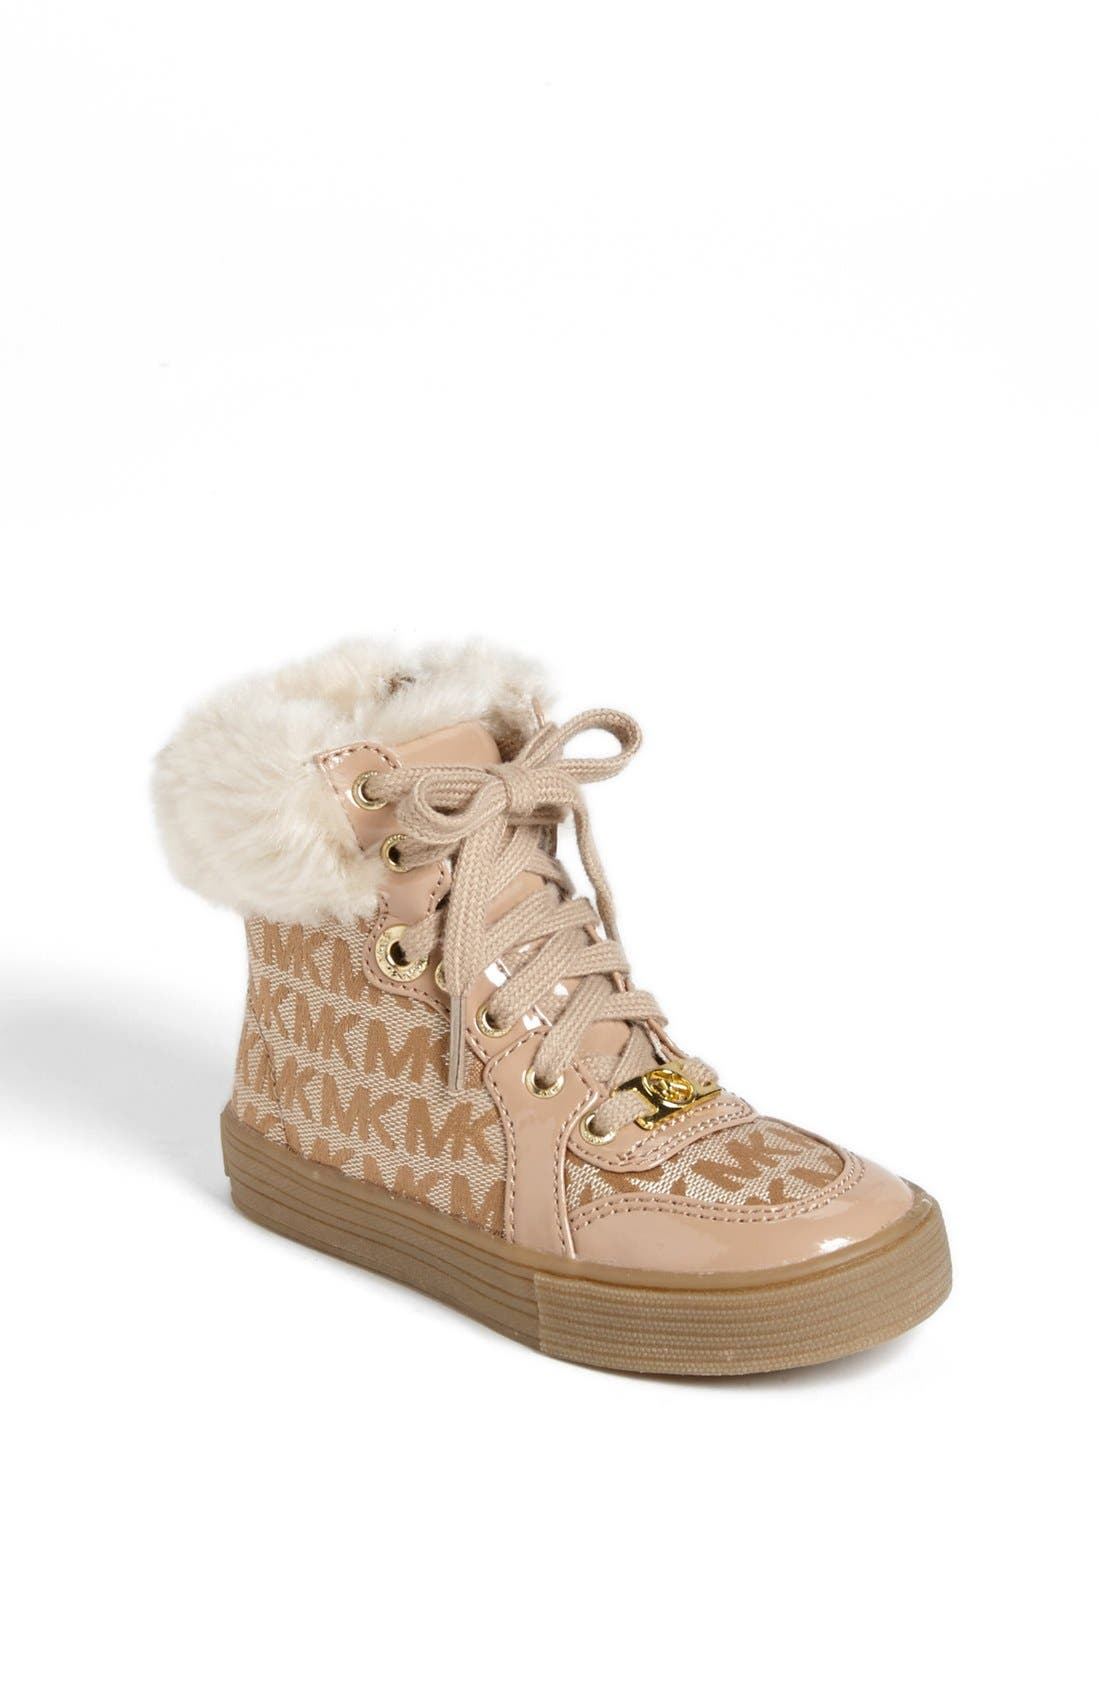 Alternate Image 1 Selected - MICHAEL Michael Kors 'Ivy' Faux Fur High Top Sneaker (Little Kid)